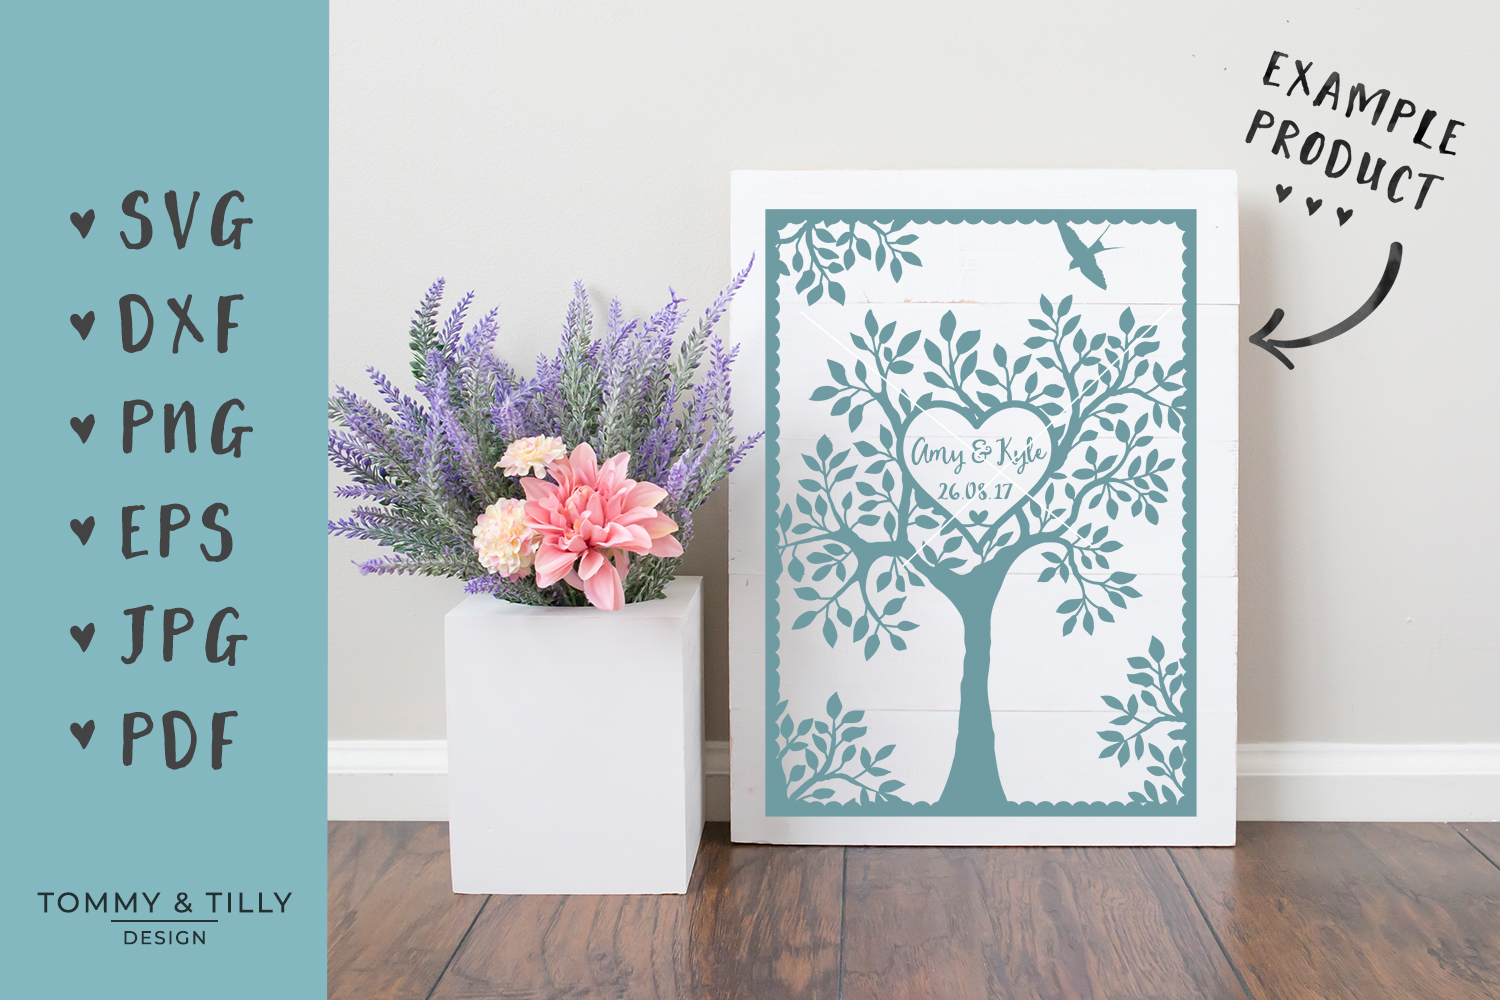 Natural Wedding Tree - SVG EPS DXF PNG PDF JPG Cutting File example image 2